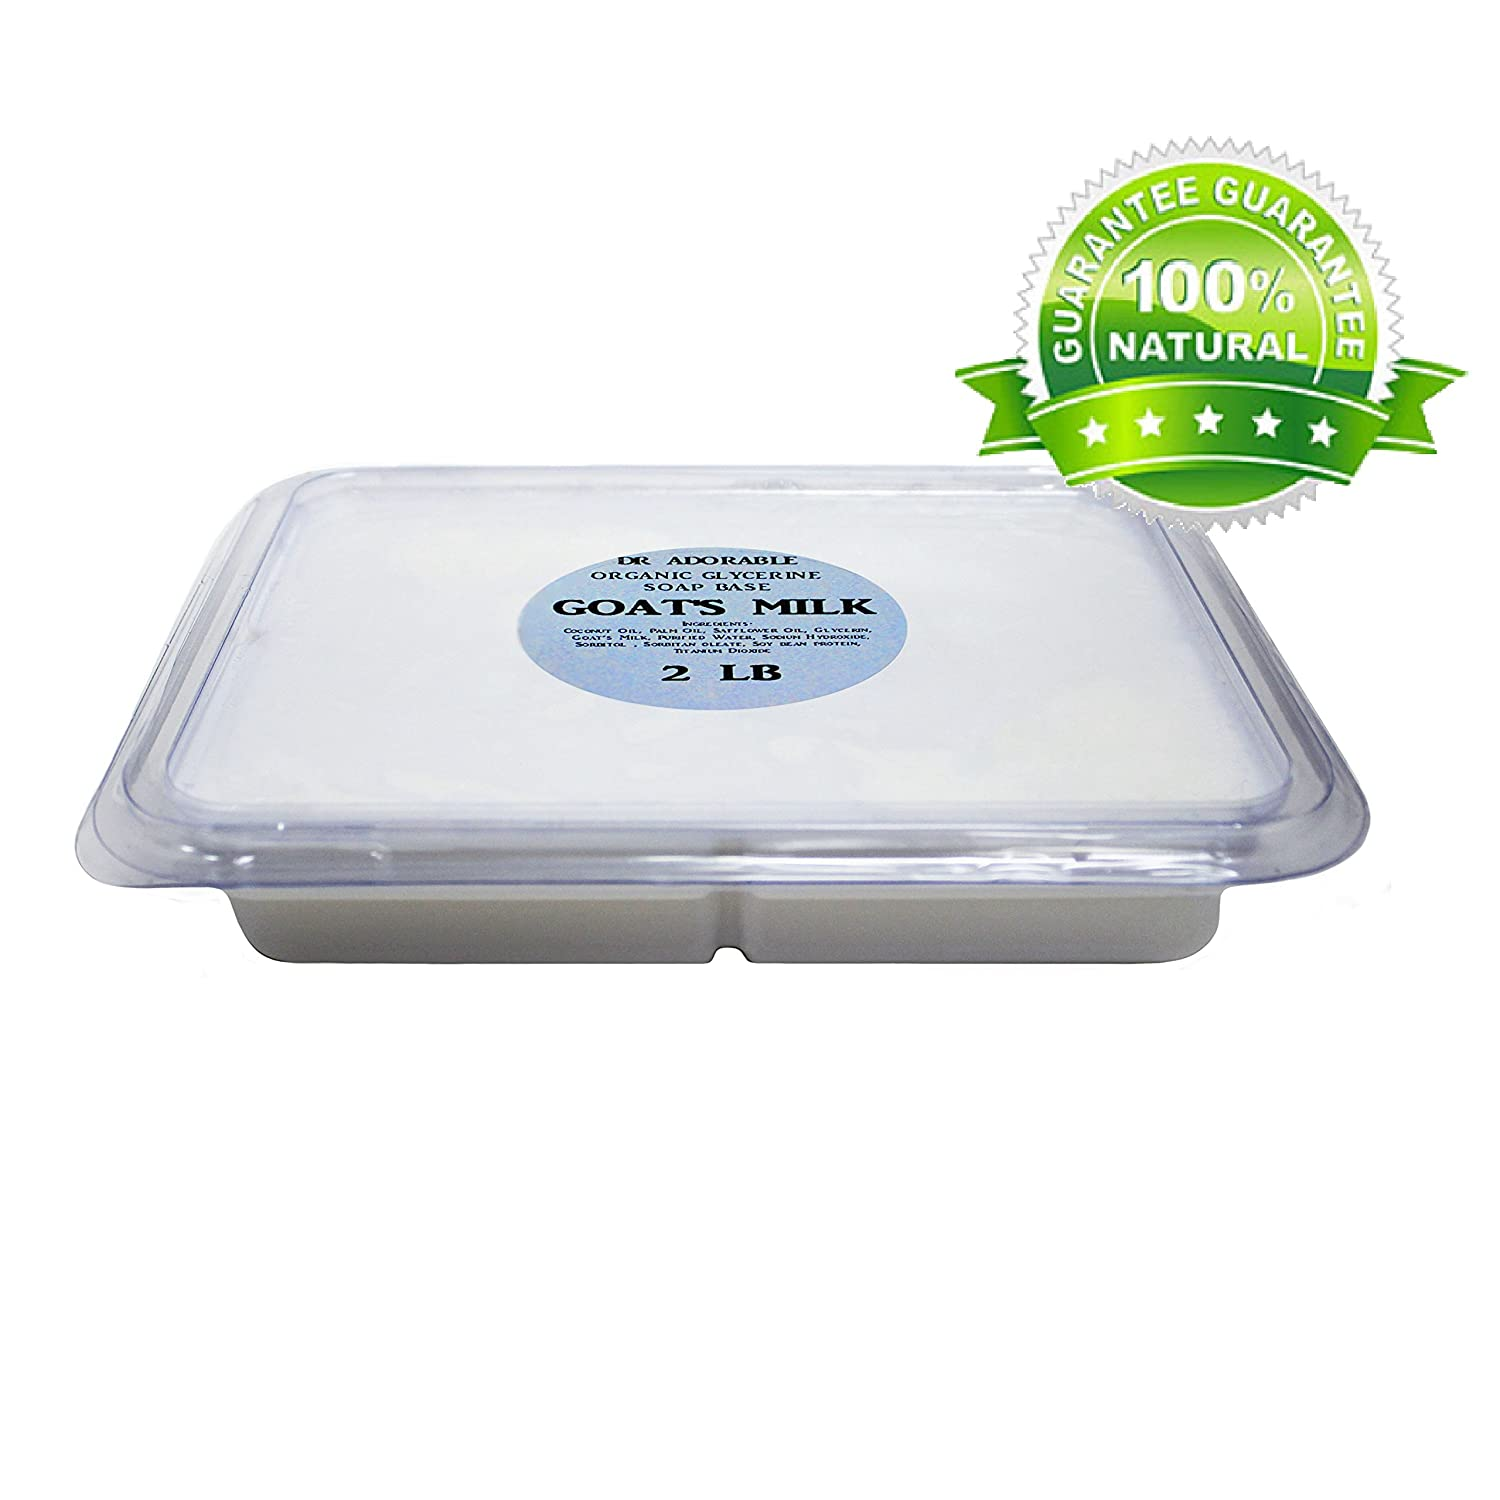 2 Lb Tray GOATS MILK Glycerin Melt & Pour Soap Base Organic